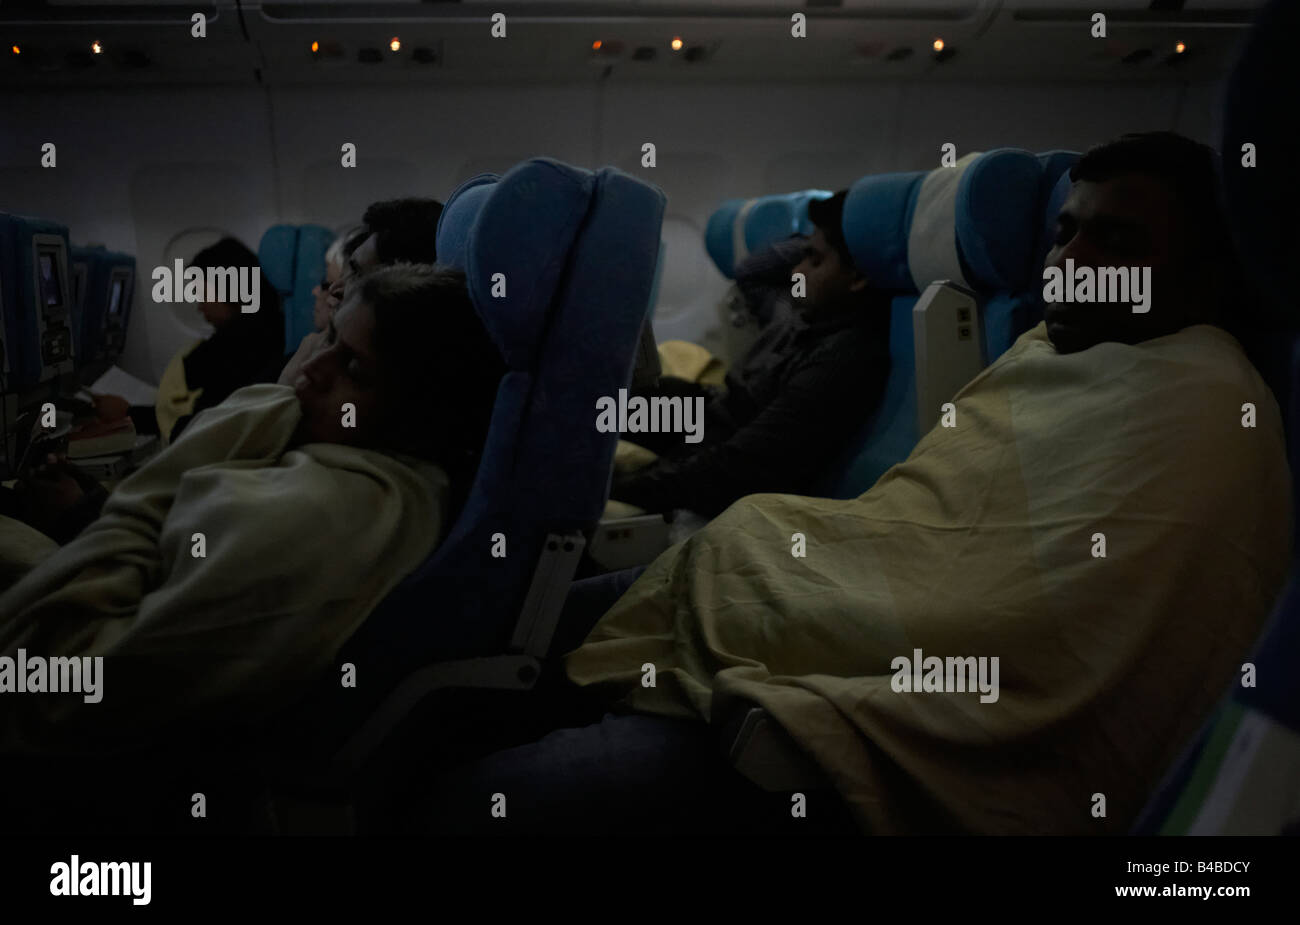 with-cabin-lights-dimmed-economy-class-p